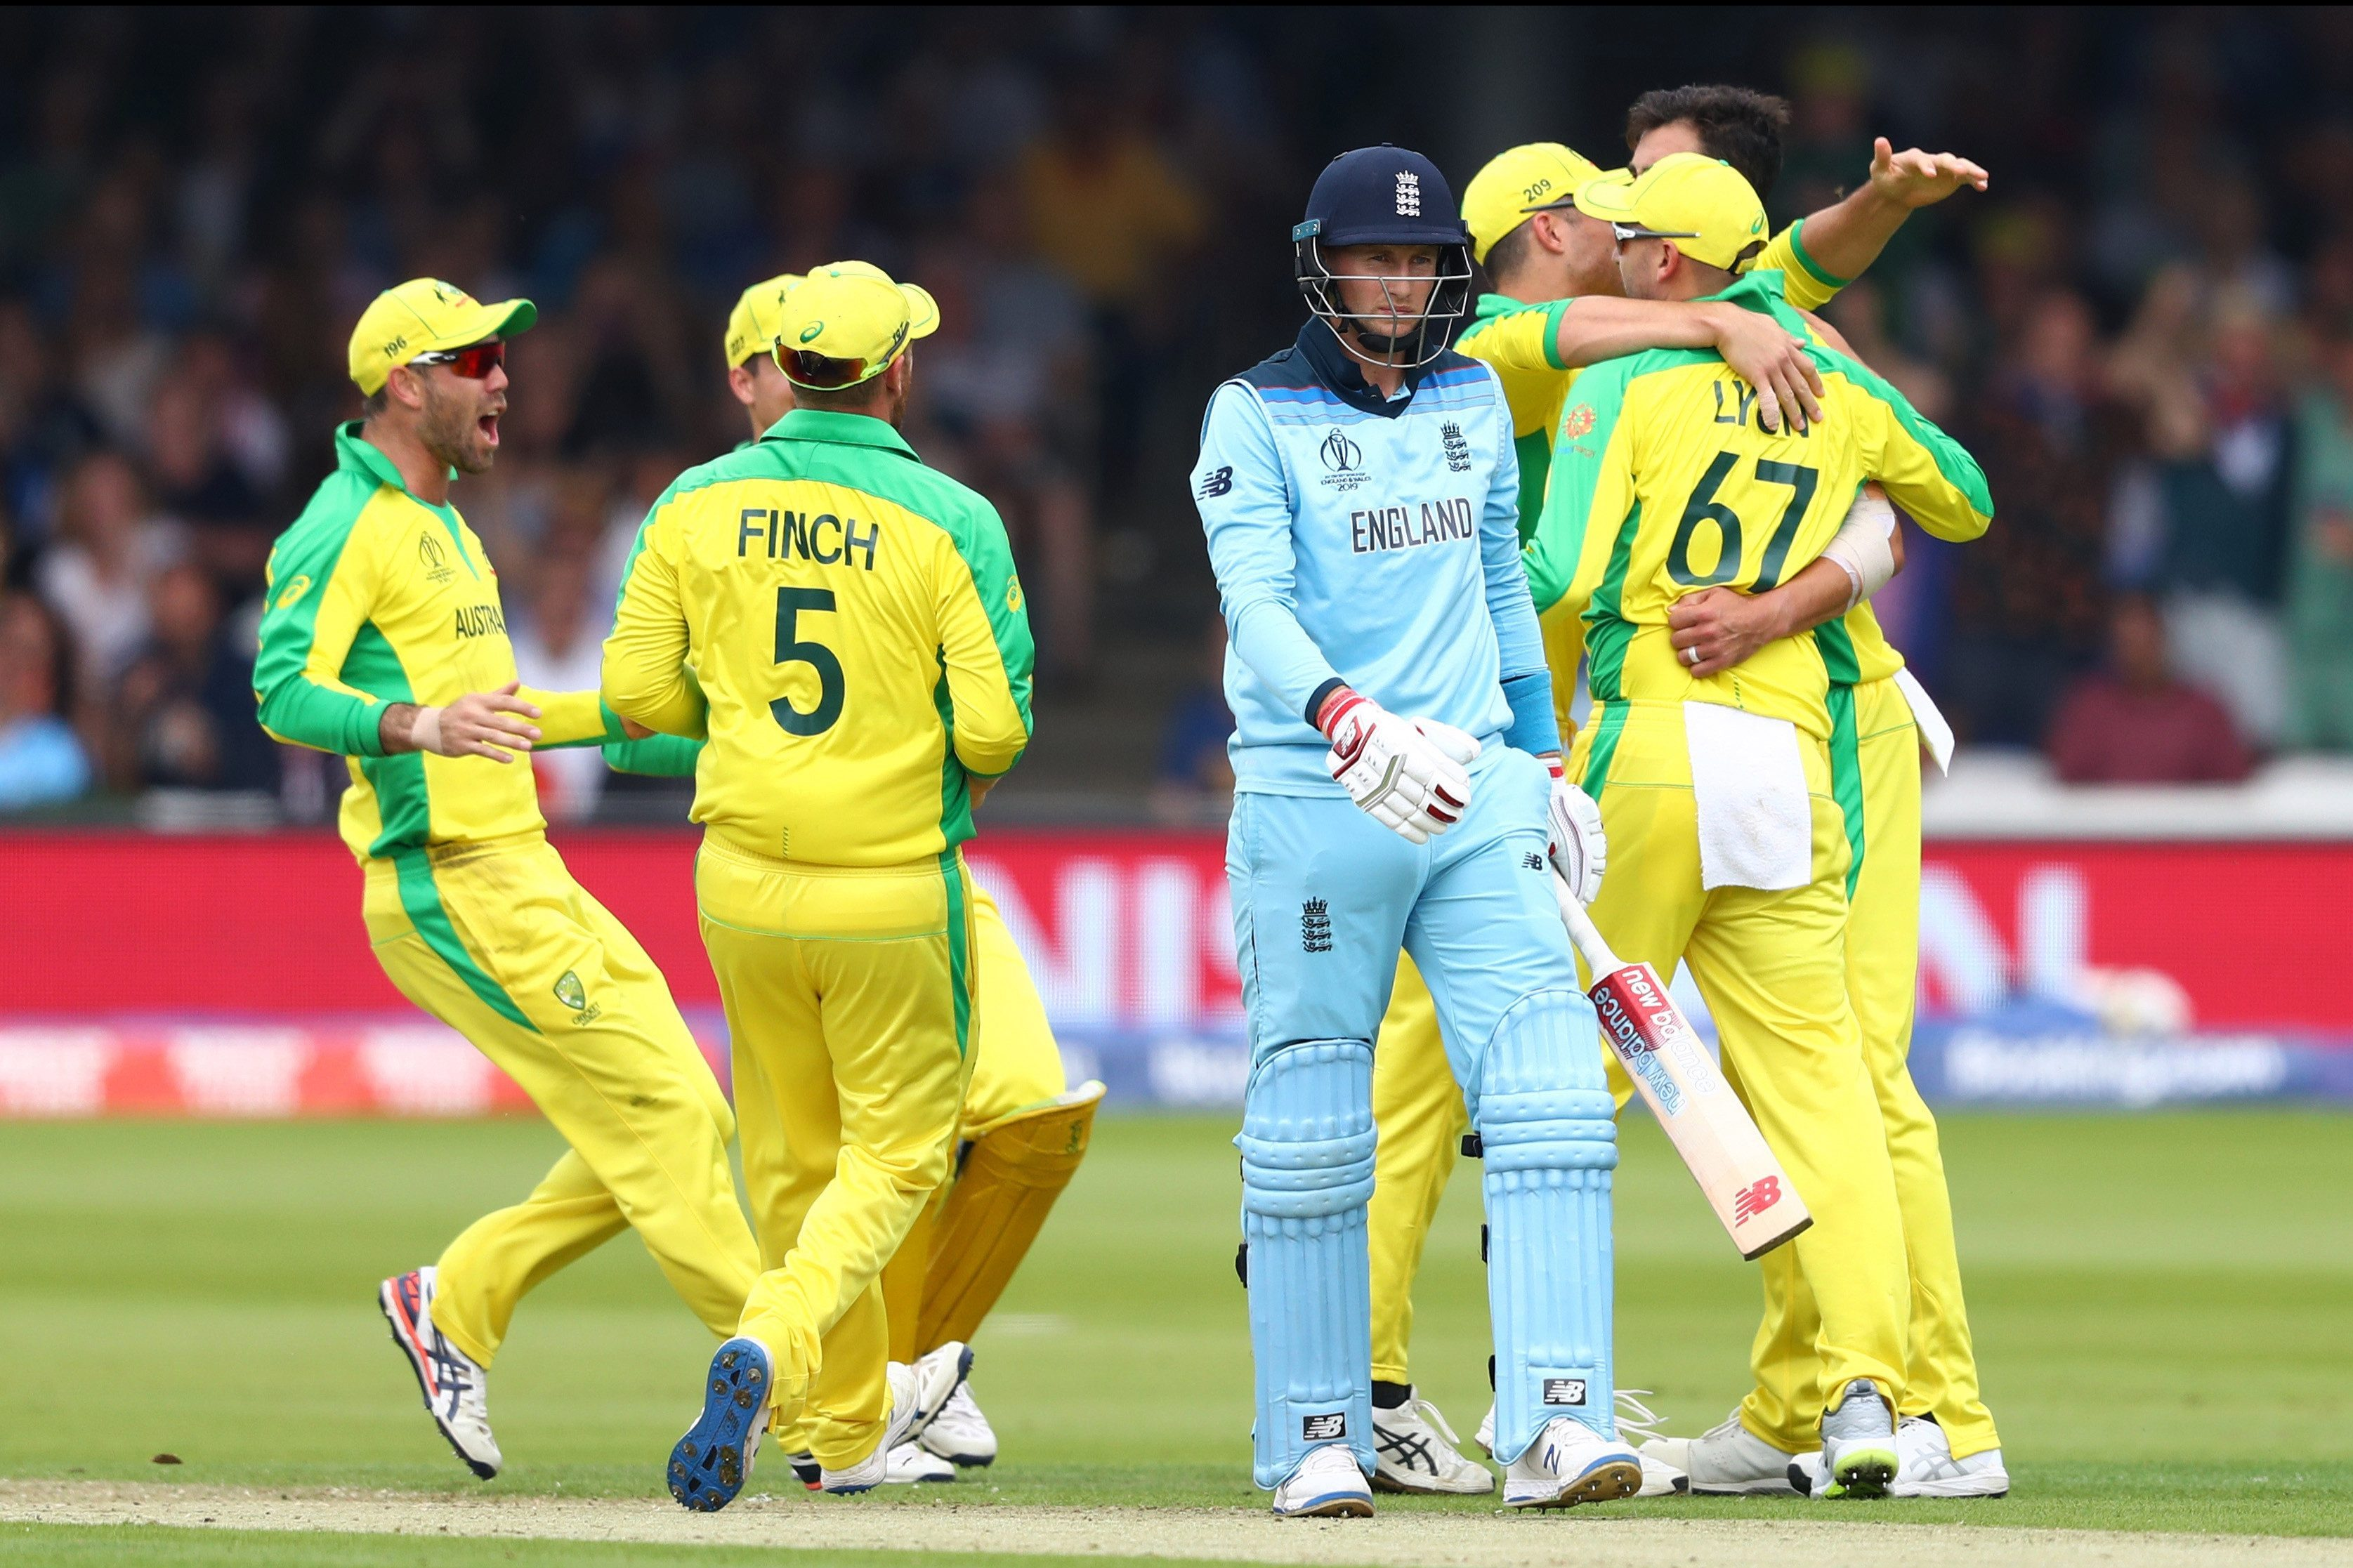 Australia beat England in the group stages of the Cricket World Cup